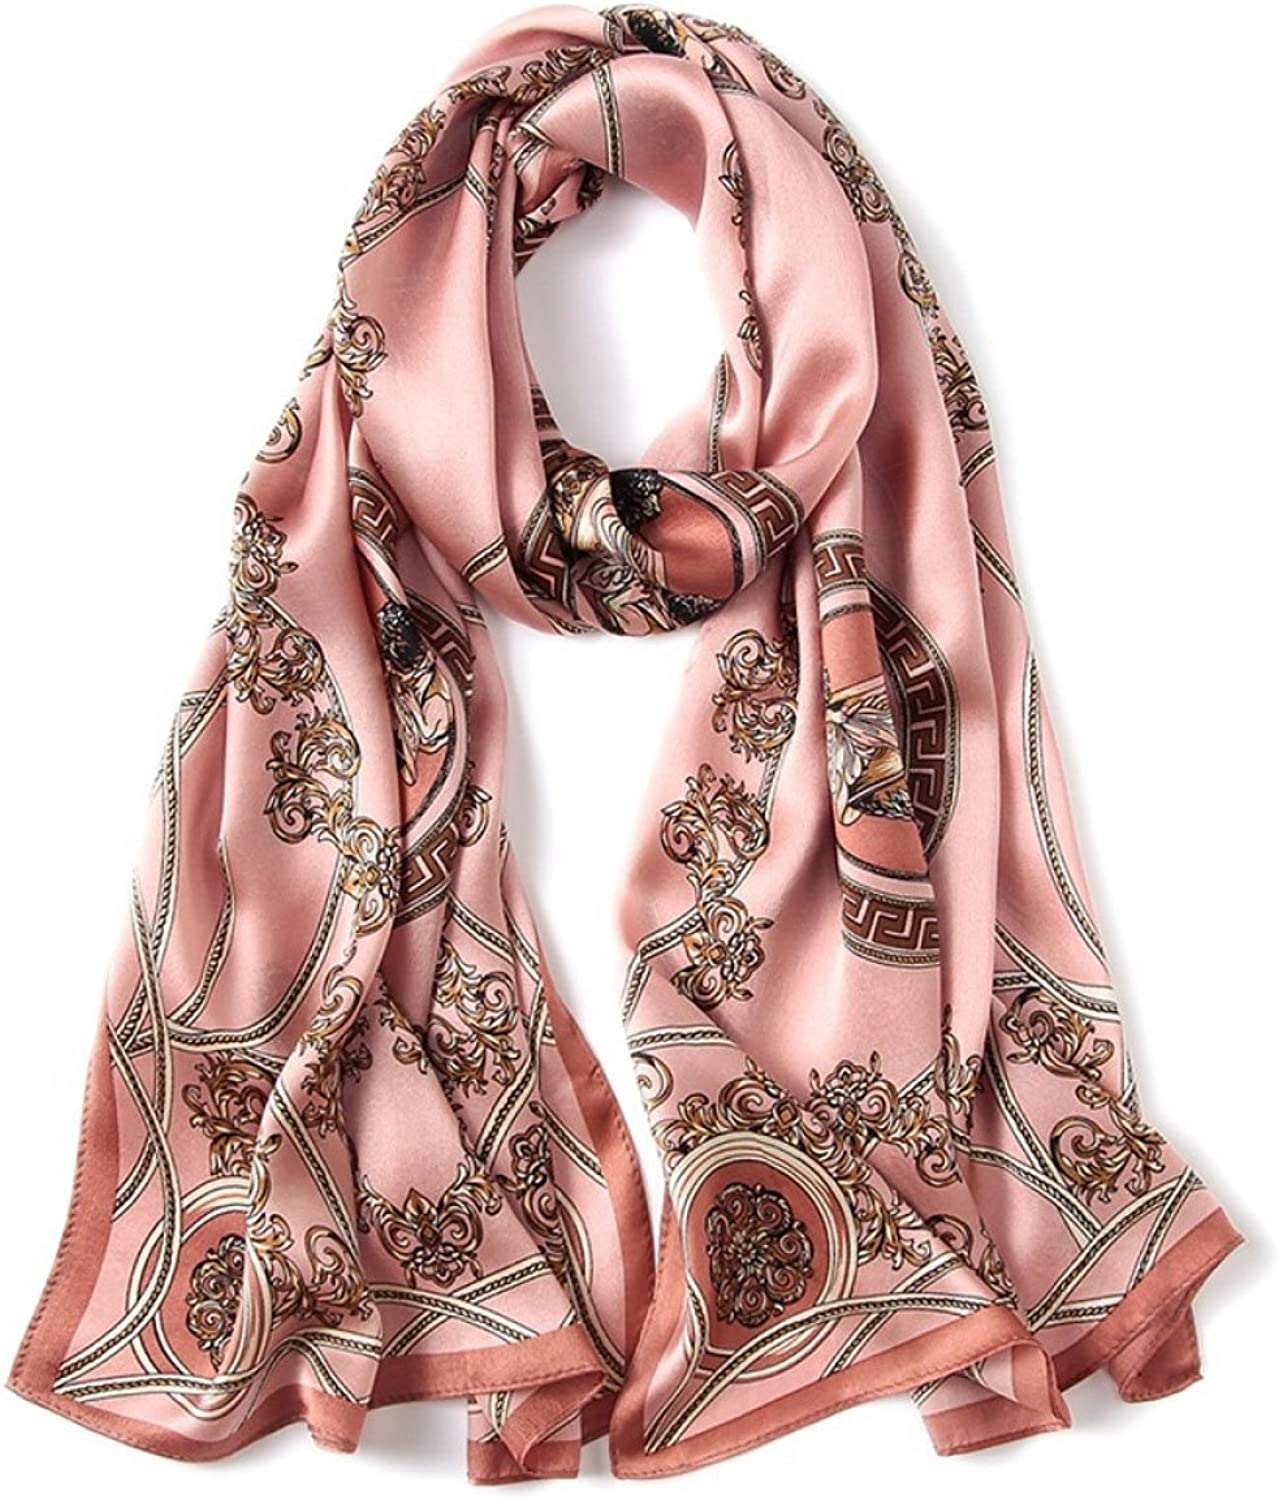 GAO Silk scarf Print Embroidery Embroidery Silk scarf Satin 100% silk silk scarf Sunscreen shawl Beach towel (length  170  50cm, Packing of 1) (color   C)